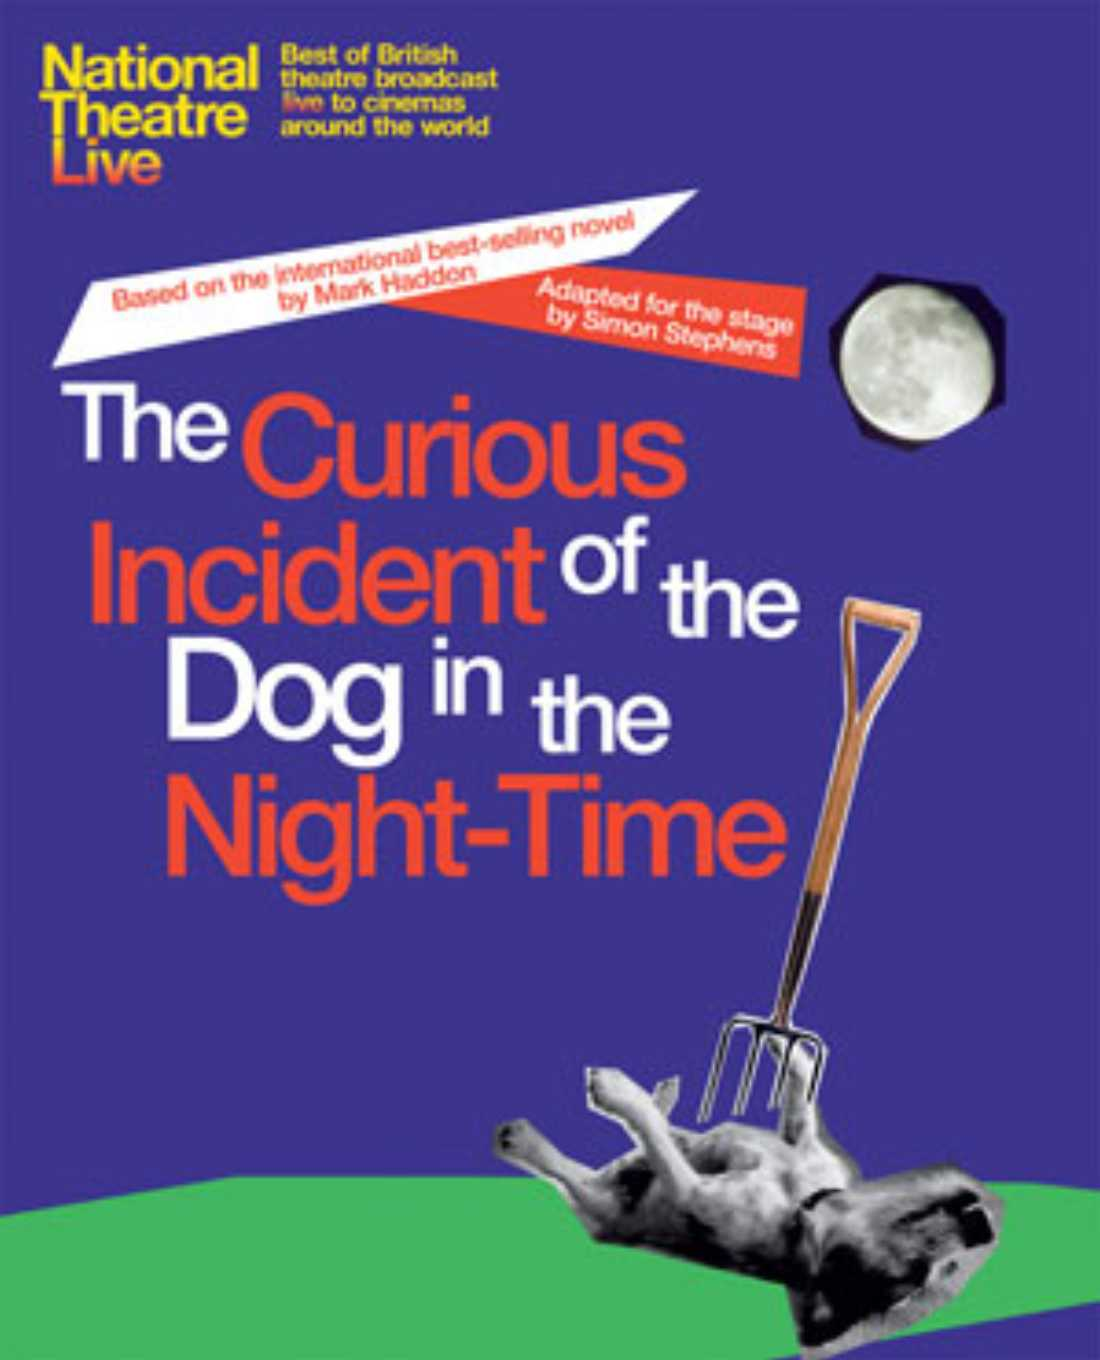 The Curious Incident of the Dog in the Night-Time screens Wednesday at 2pm and 7pm at the Modern Art Museum of Fort Worth.